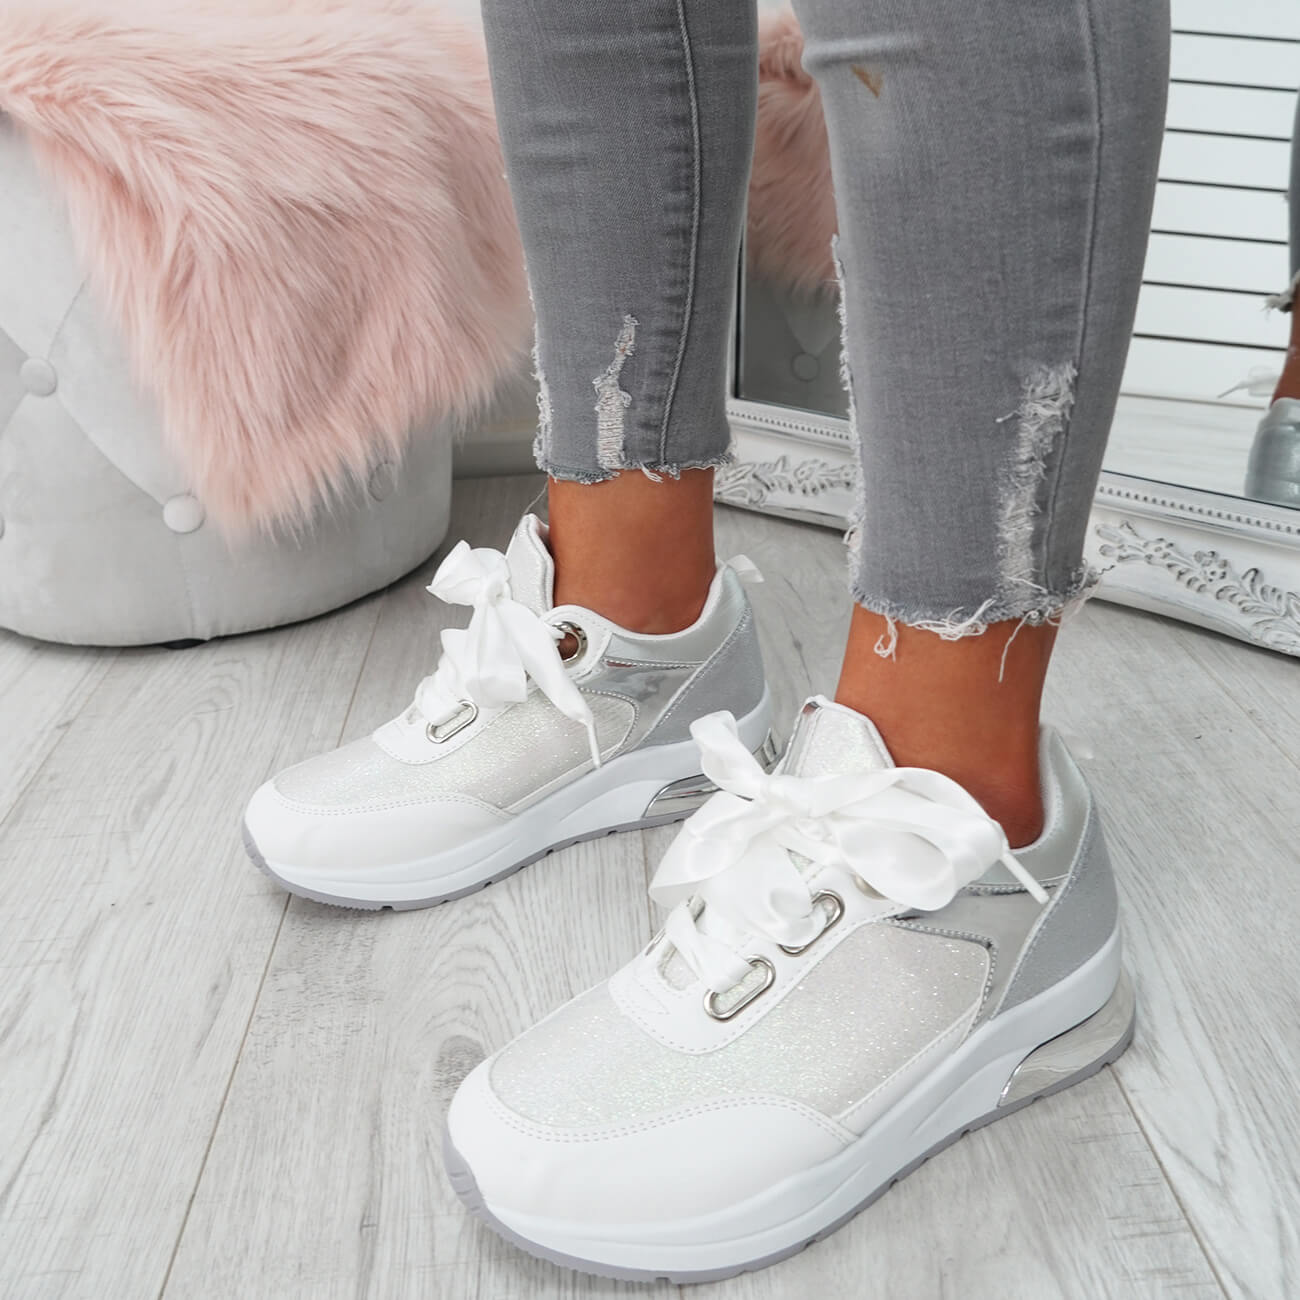 WOMENS-LADIES-RIBBON-TRAINERS-GLITTER-SPARKLE-SNEAKERS-RUNNING-FASHION-SHOES thumbnail 17